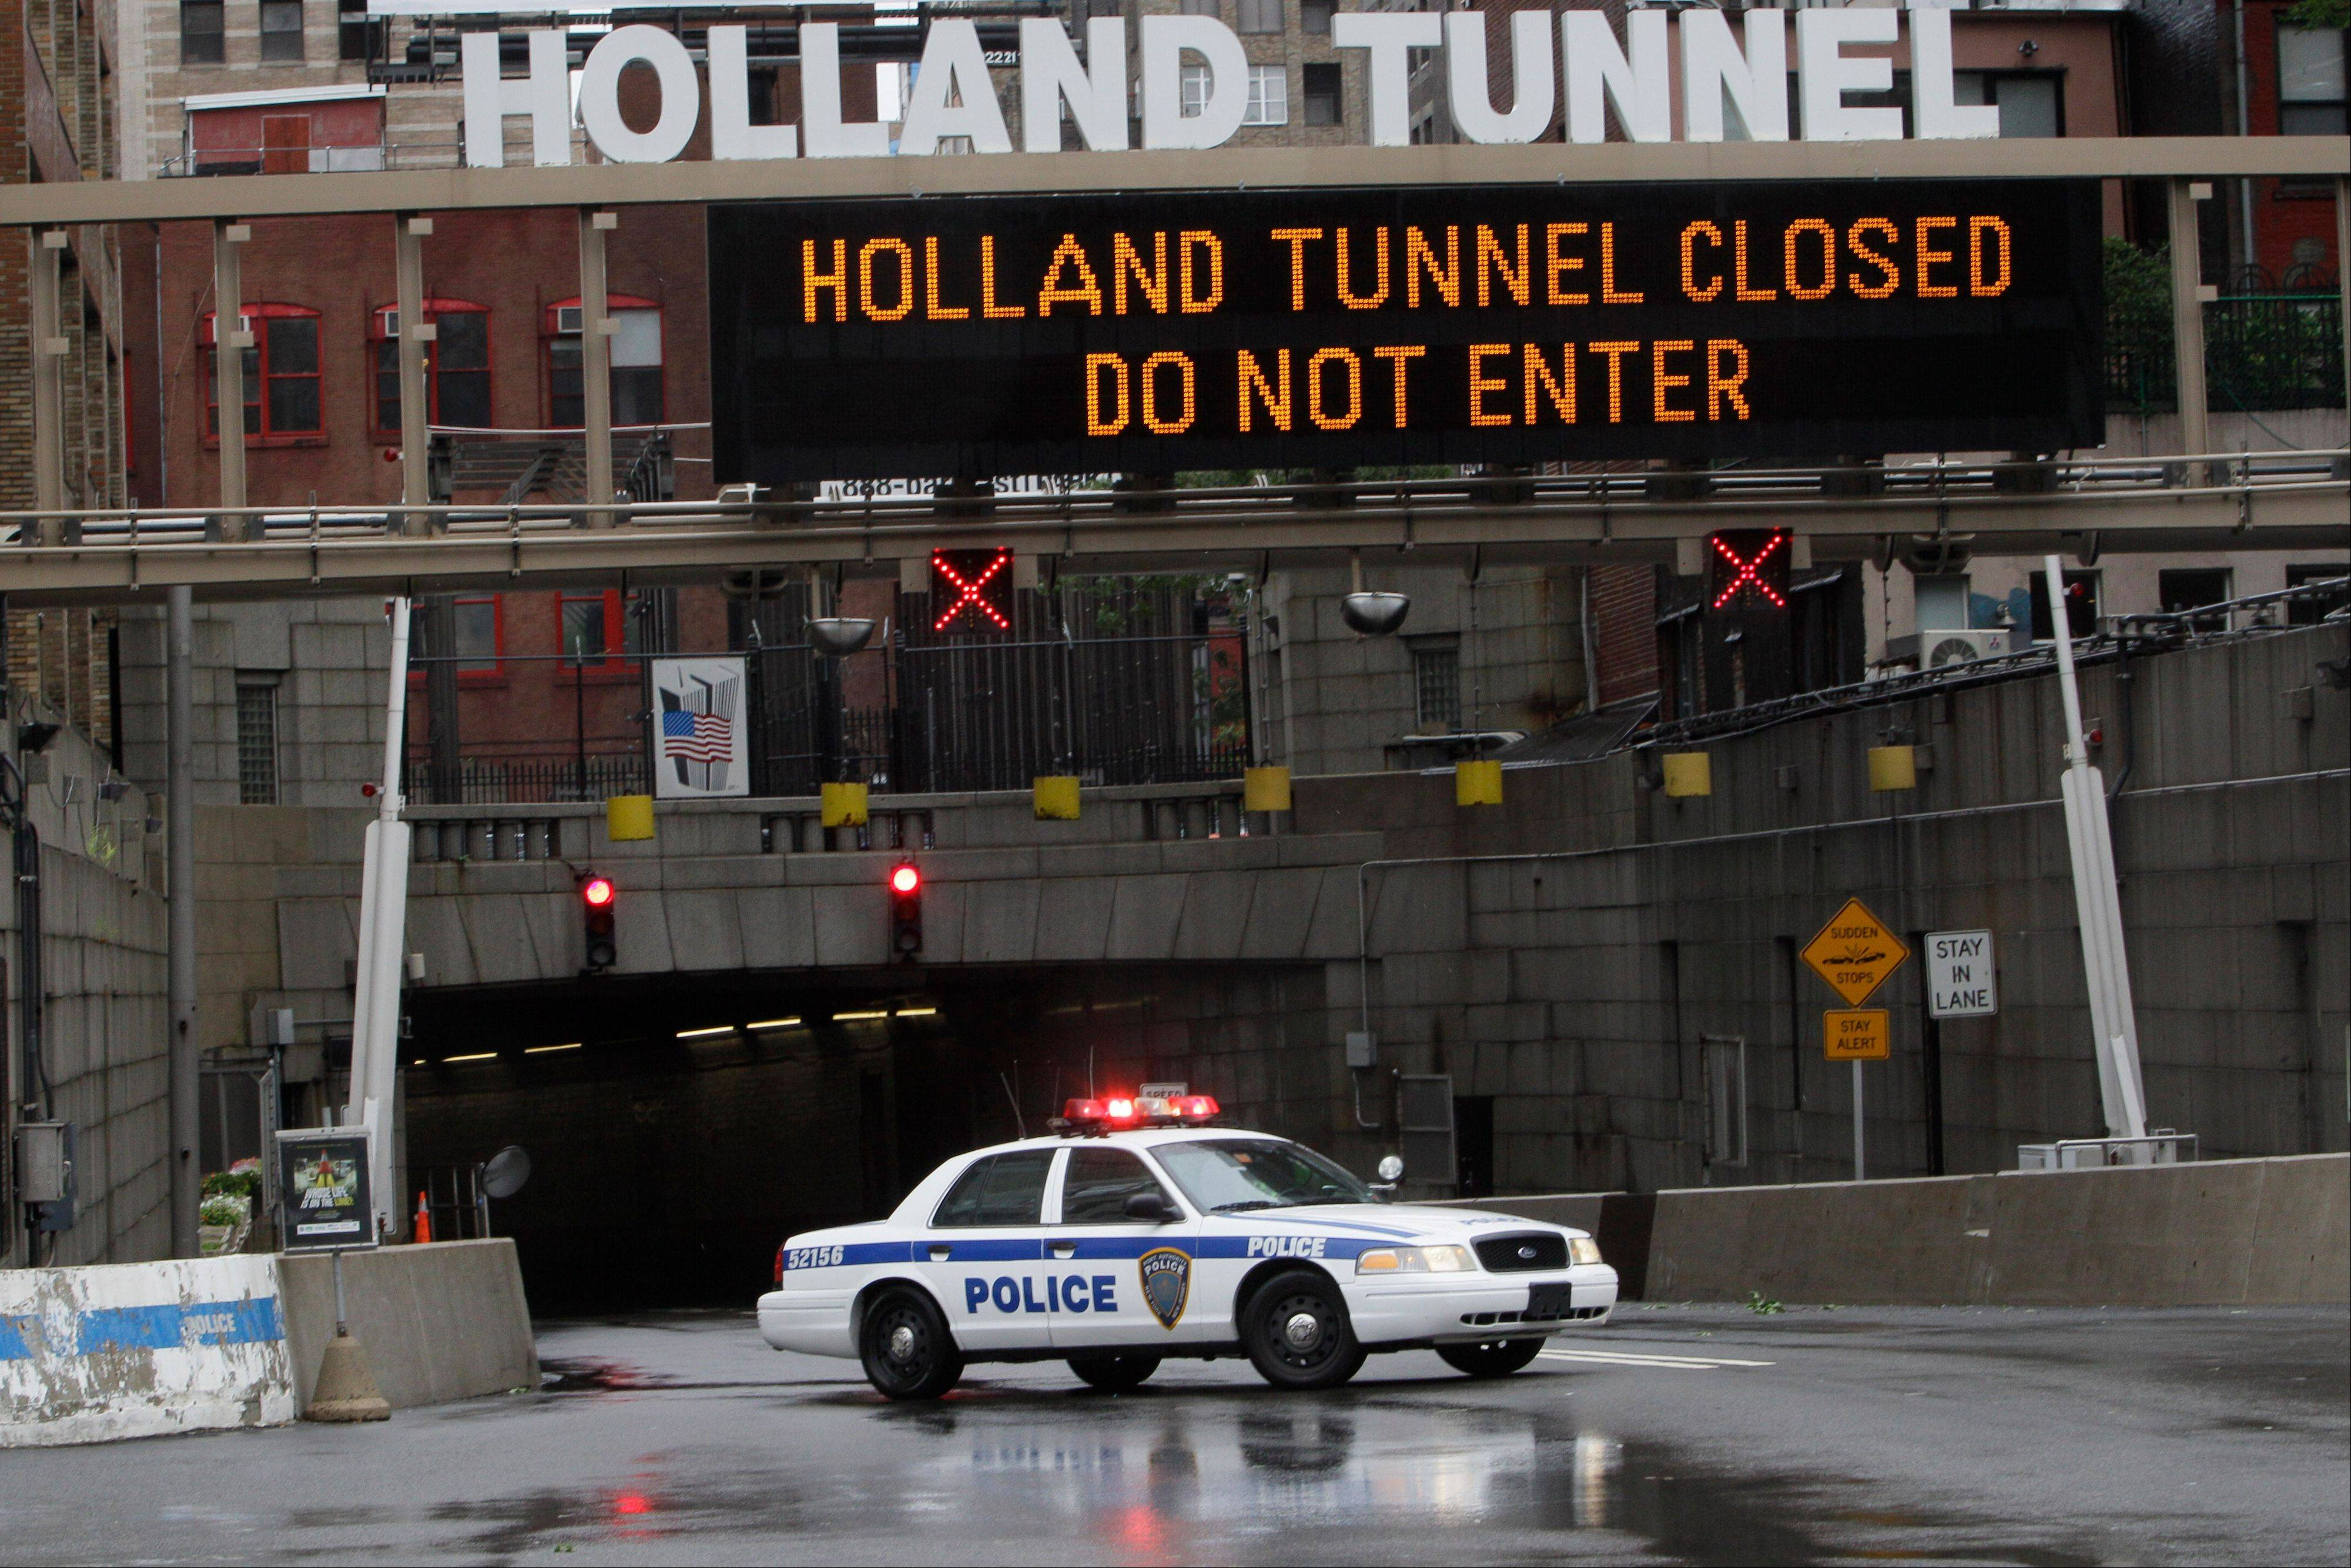 A Port Authority police vehicle blocks traffic from entering the Holland Tunnel Sunday, Aug. 28, 2011 in New York. The north, or New Jersey-bound side of the Holland Tunnel was closed Sunday morning because of flooding from Tropical Storm Irene's rains.